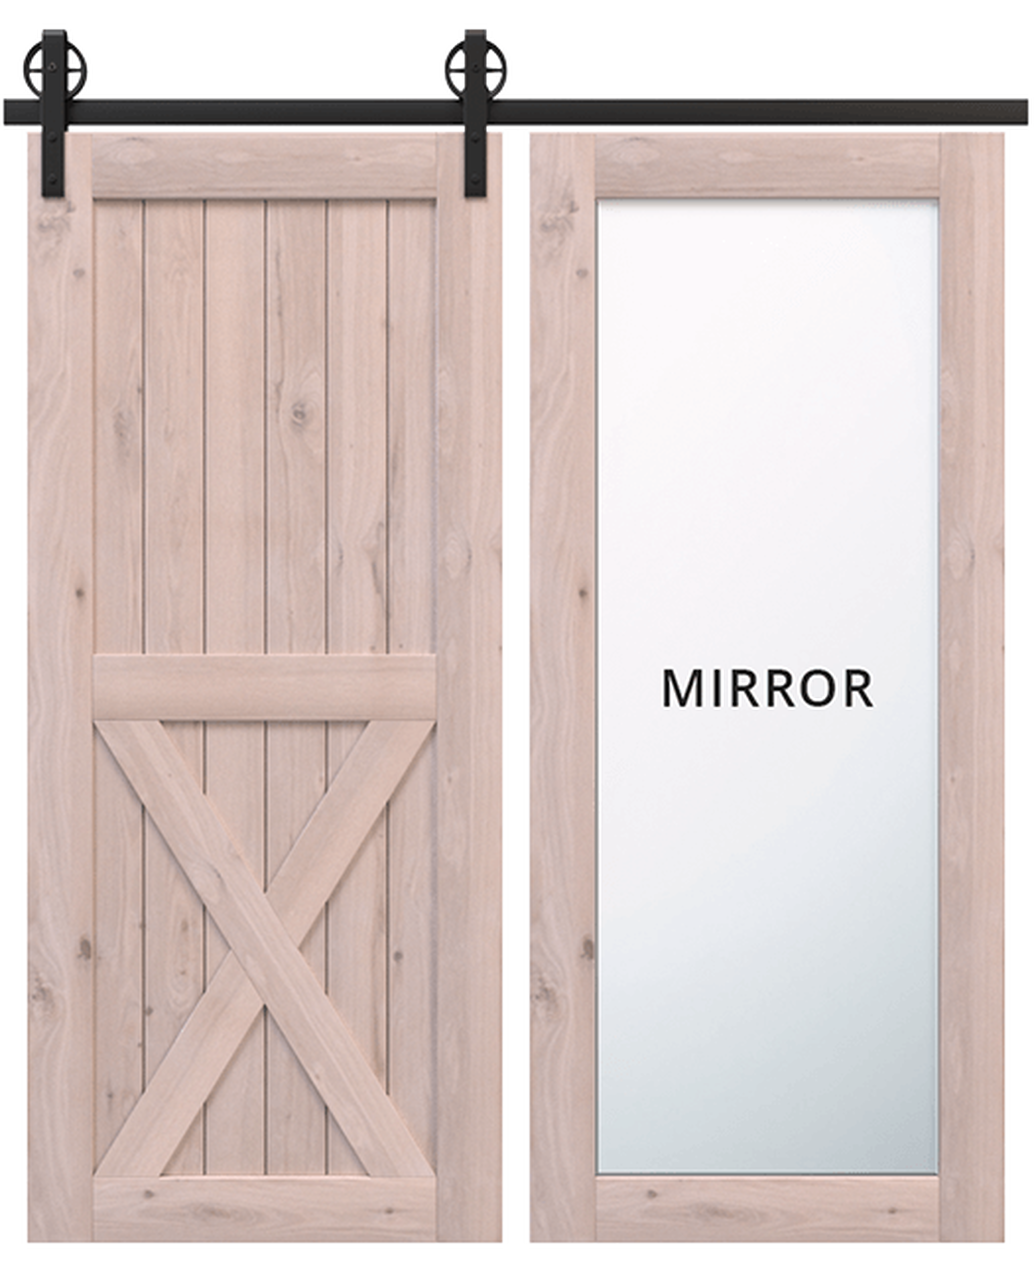 lake placid wood full pane mirror unfinished wood half x panel barn door